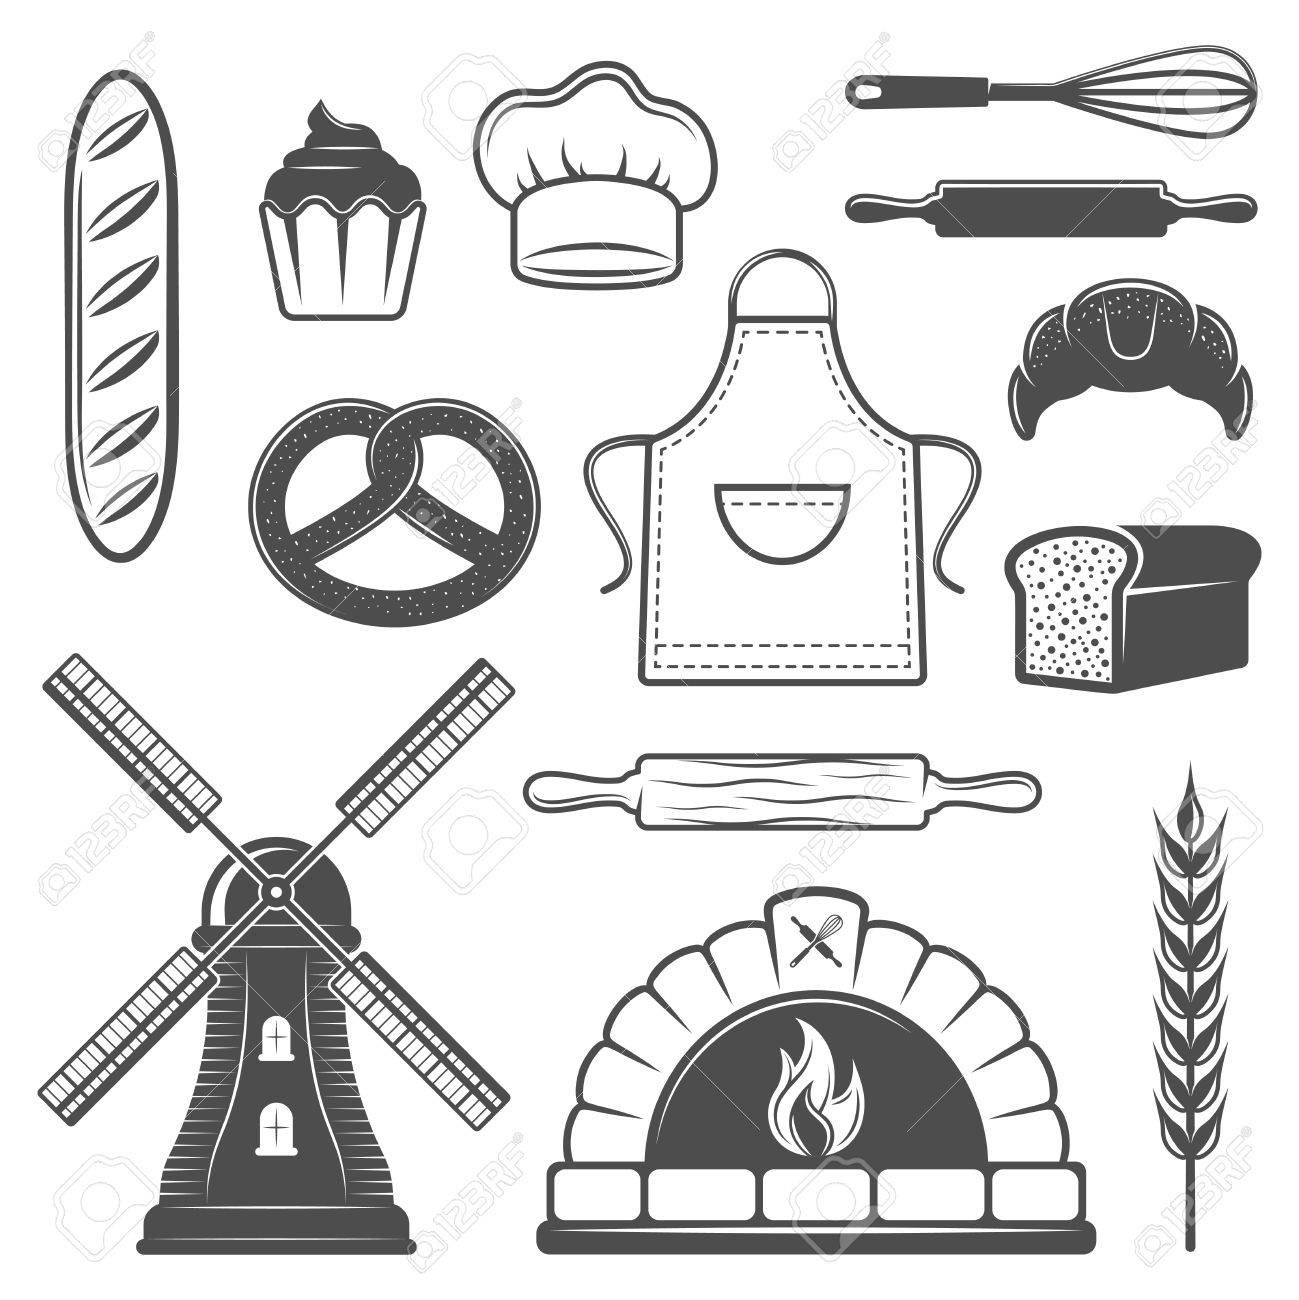 1299x1300 Bakery Monochrome Elements Set With Bread And Pastry Oven Culinary